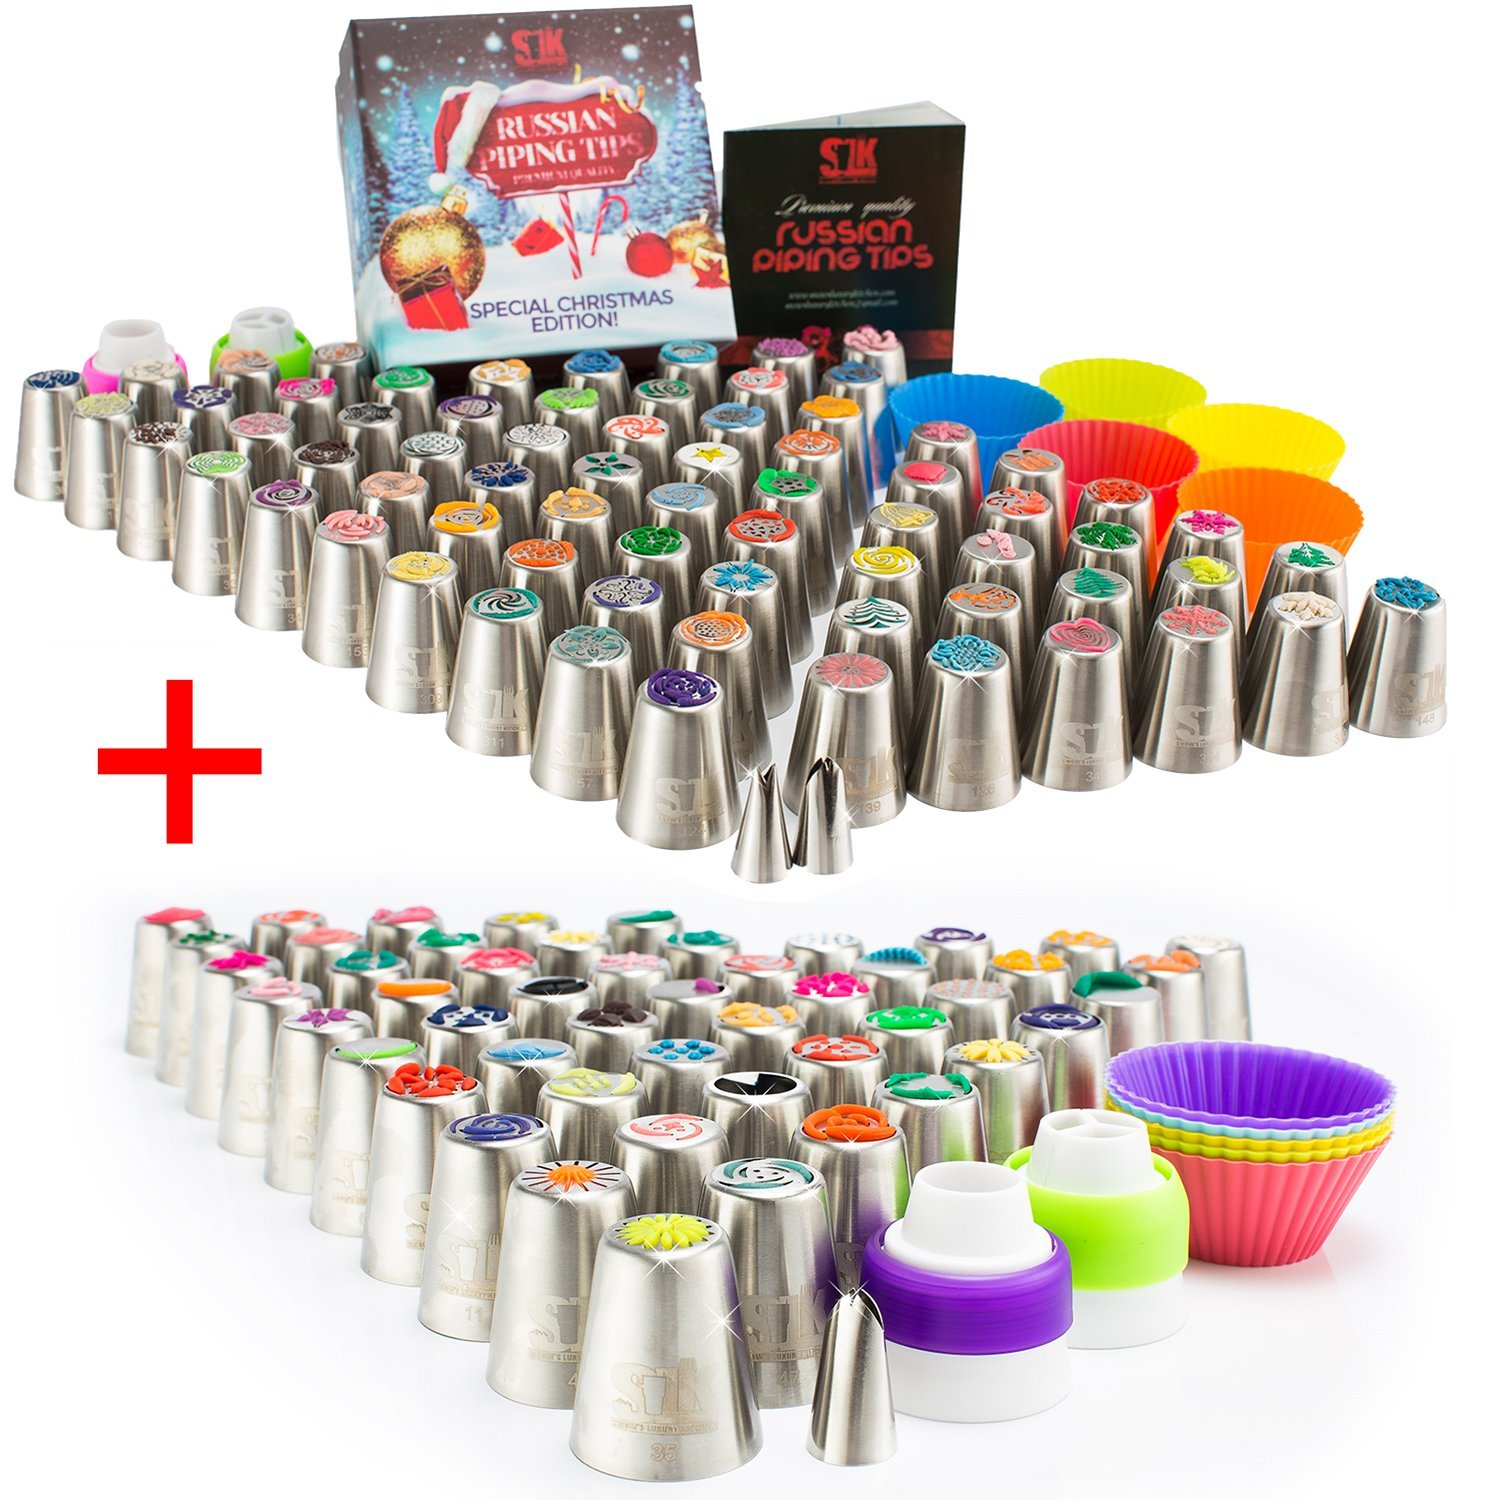 Russian piping tips: 120 nozzles, 3 leaf-tips, 2 single couplers, 2 X 3-color couplers, 5 cleaning brushes, 60 pastry bags, silicone bags, 10 silicone cups, plastic scissors, frosting bags and tips